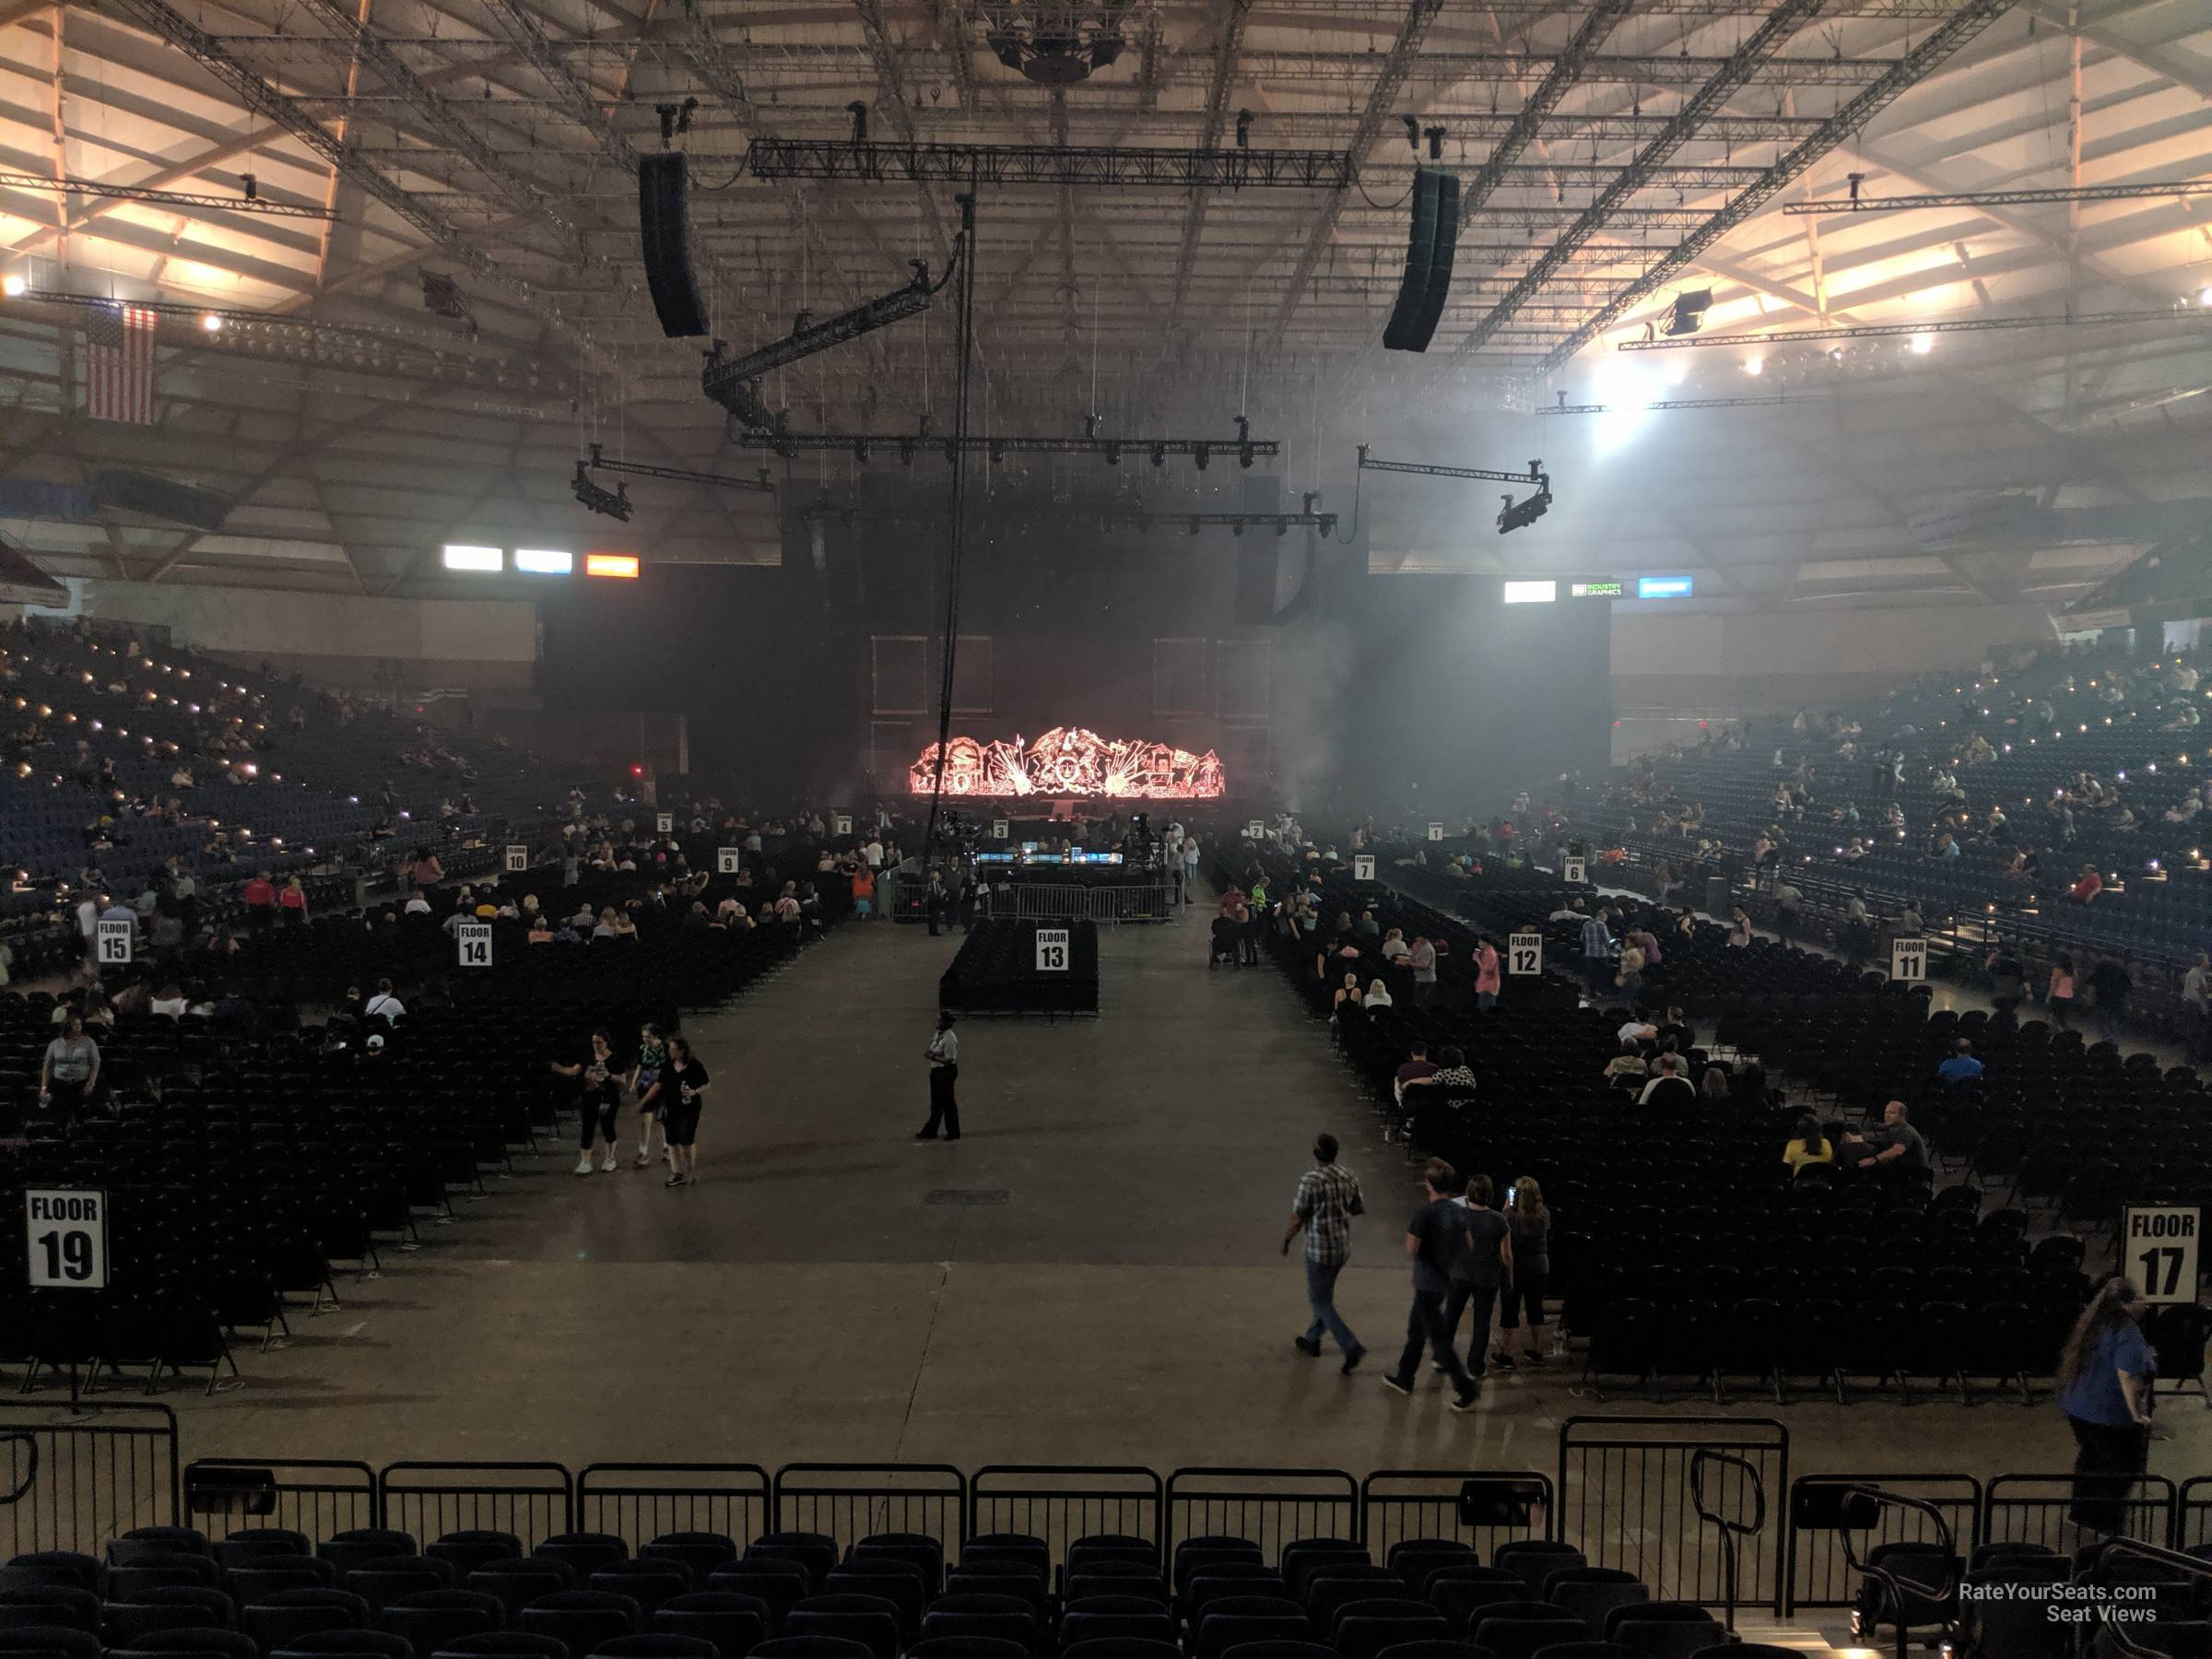 Tacoma Dome Section 111 - RateYourSeats.com